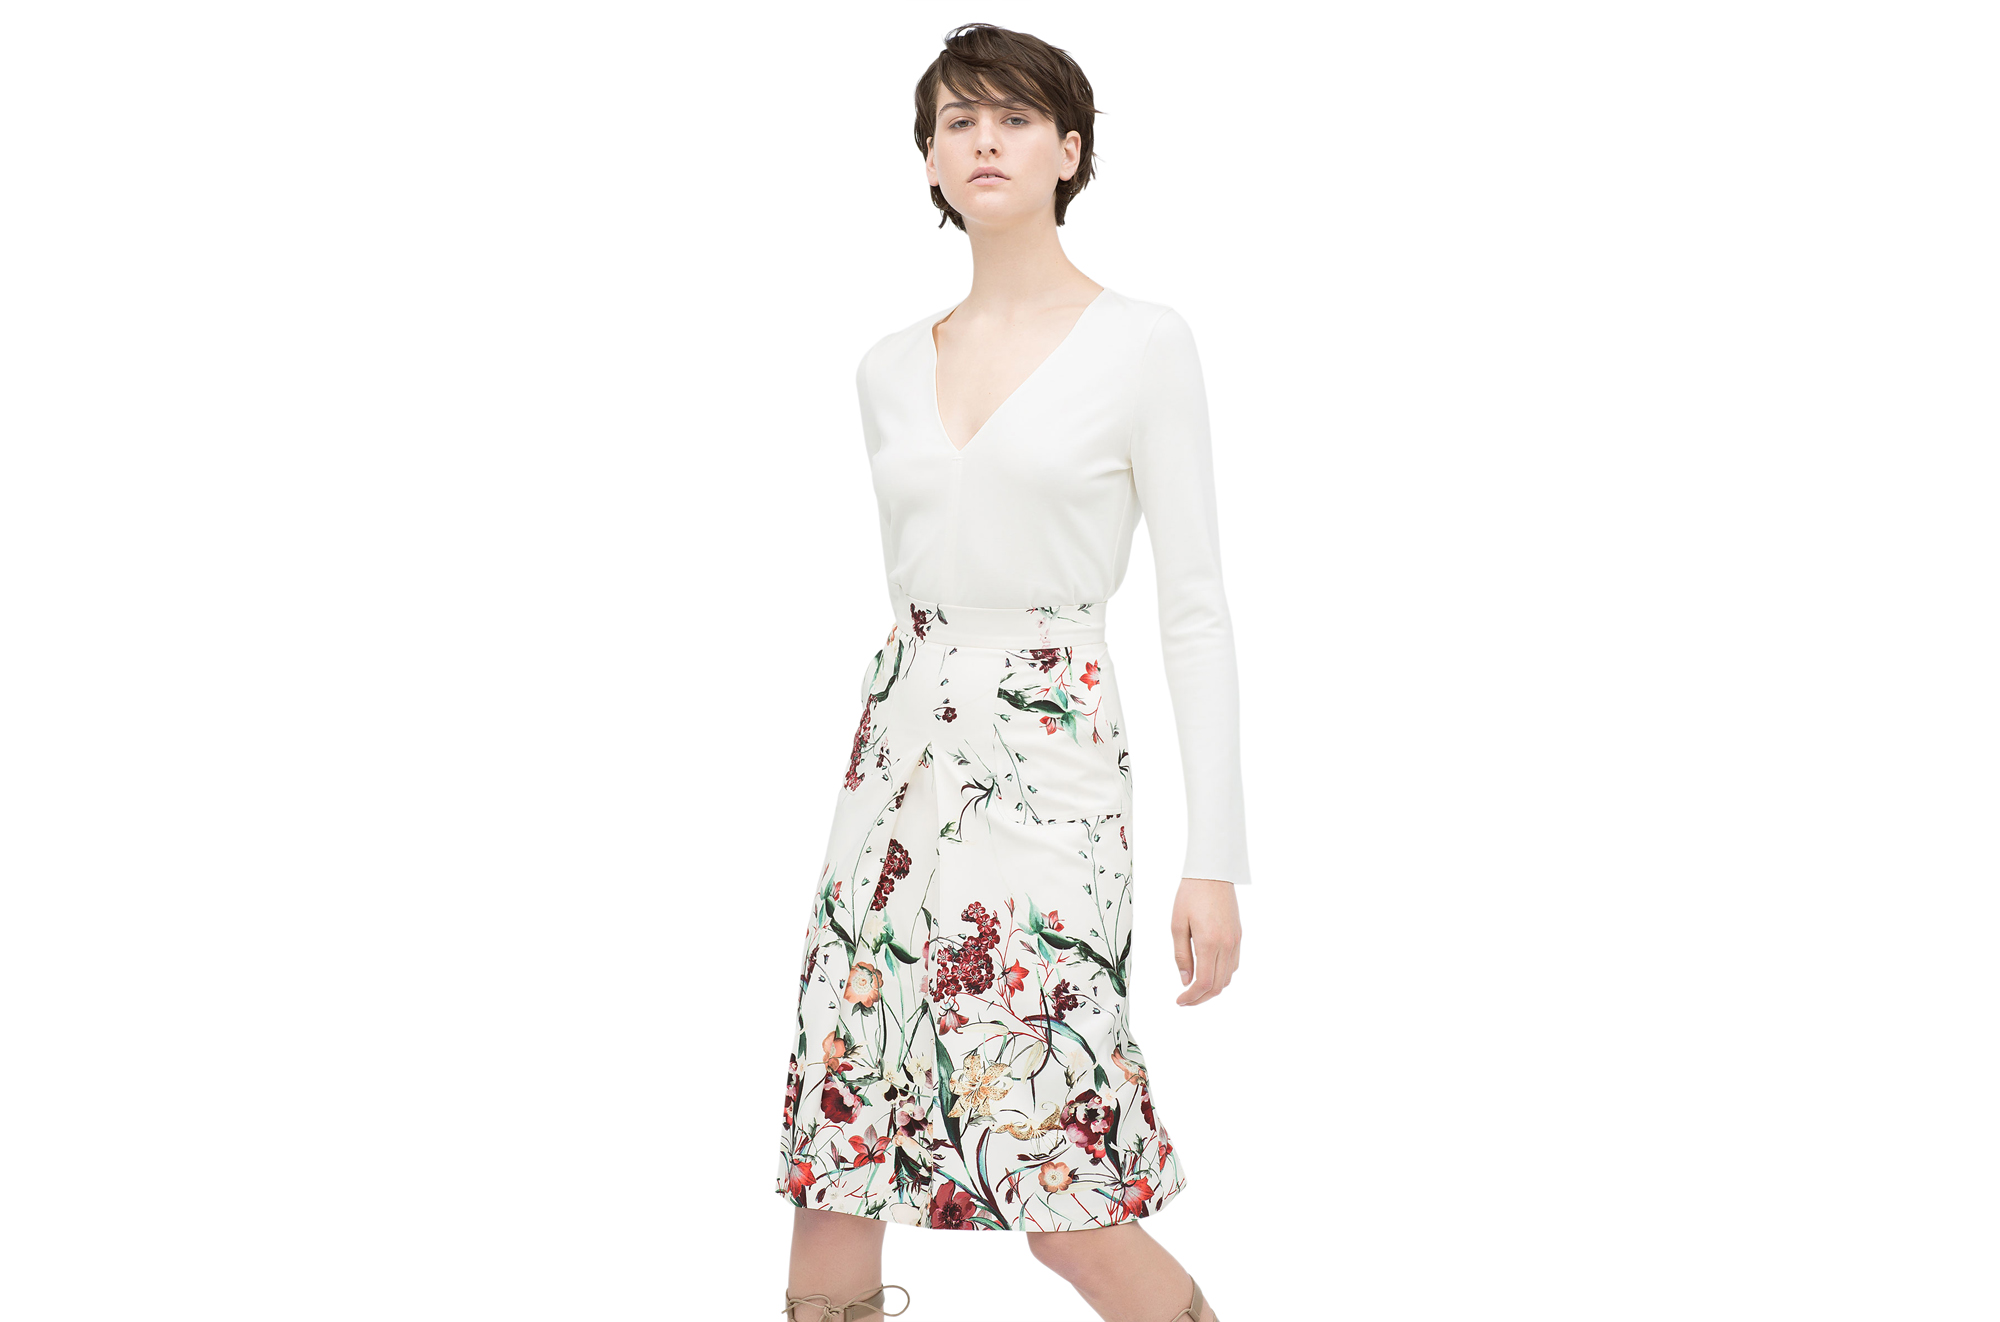 Zara Front Pleat Printed Skirt